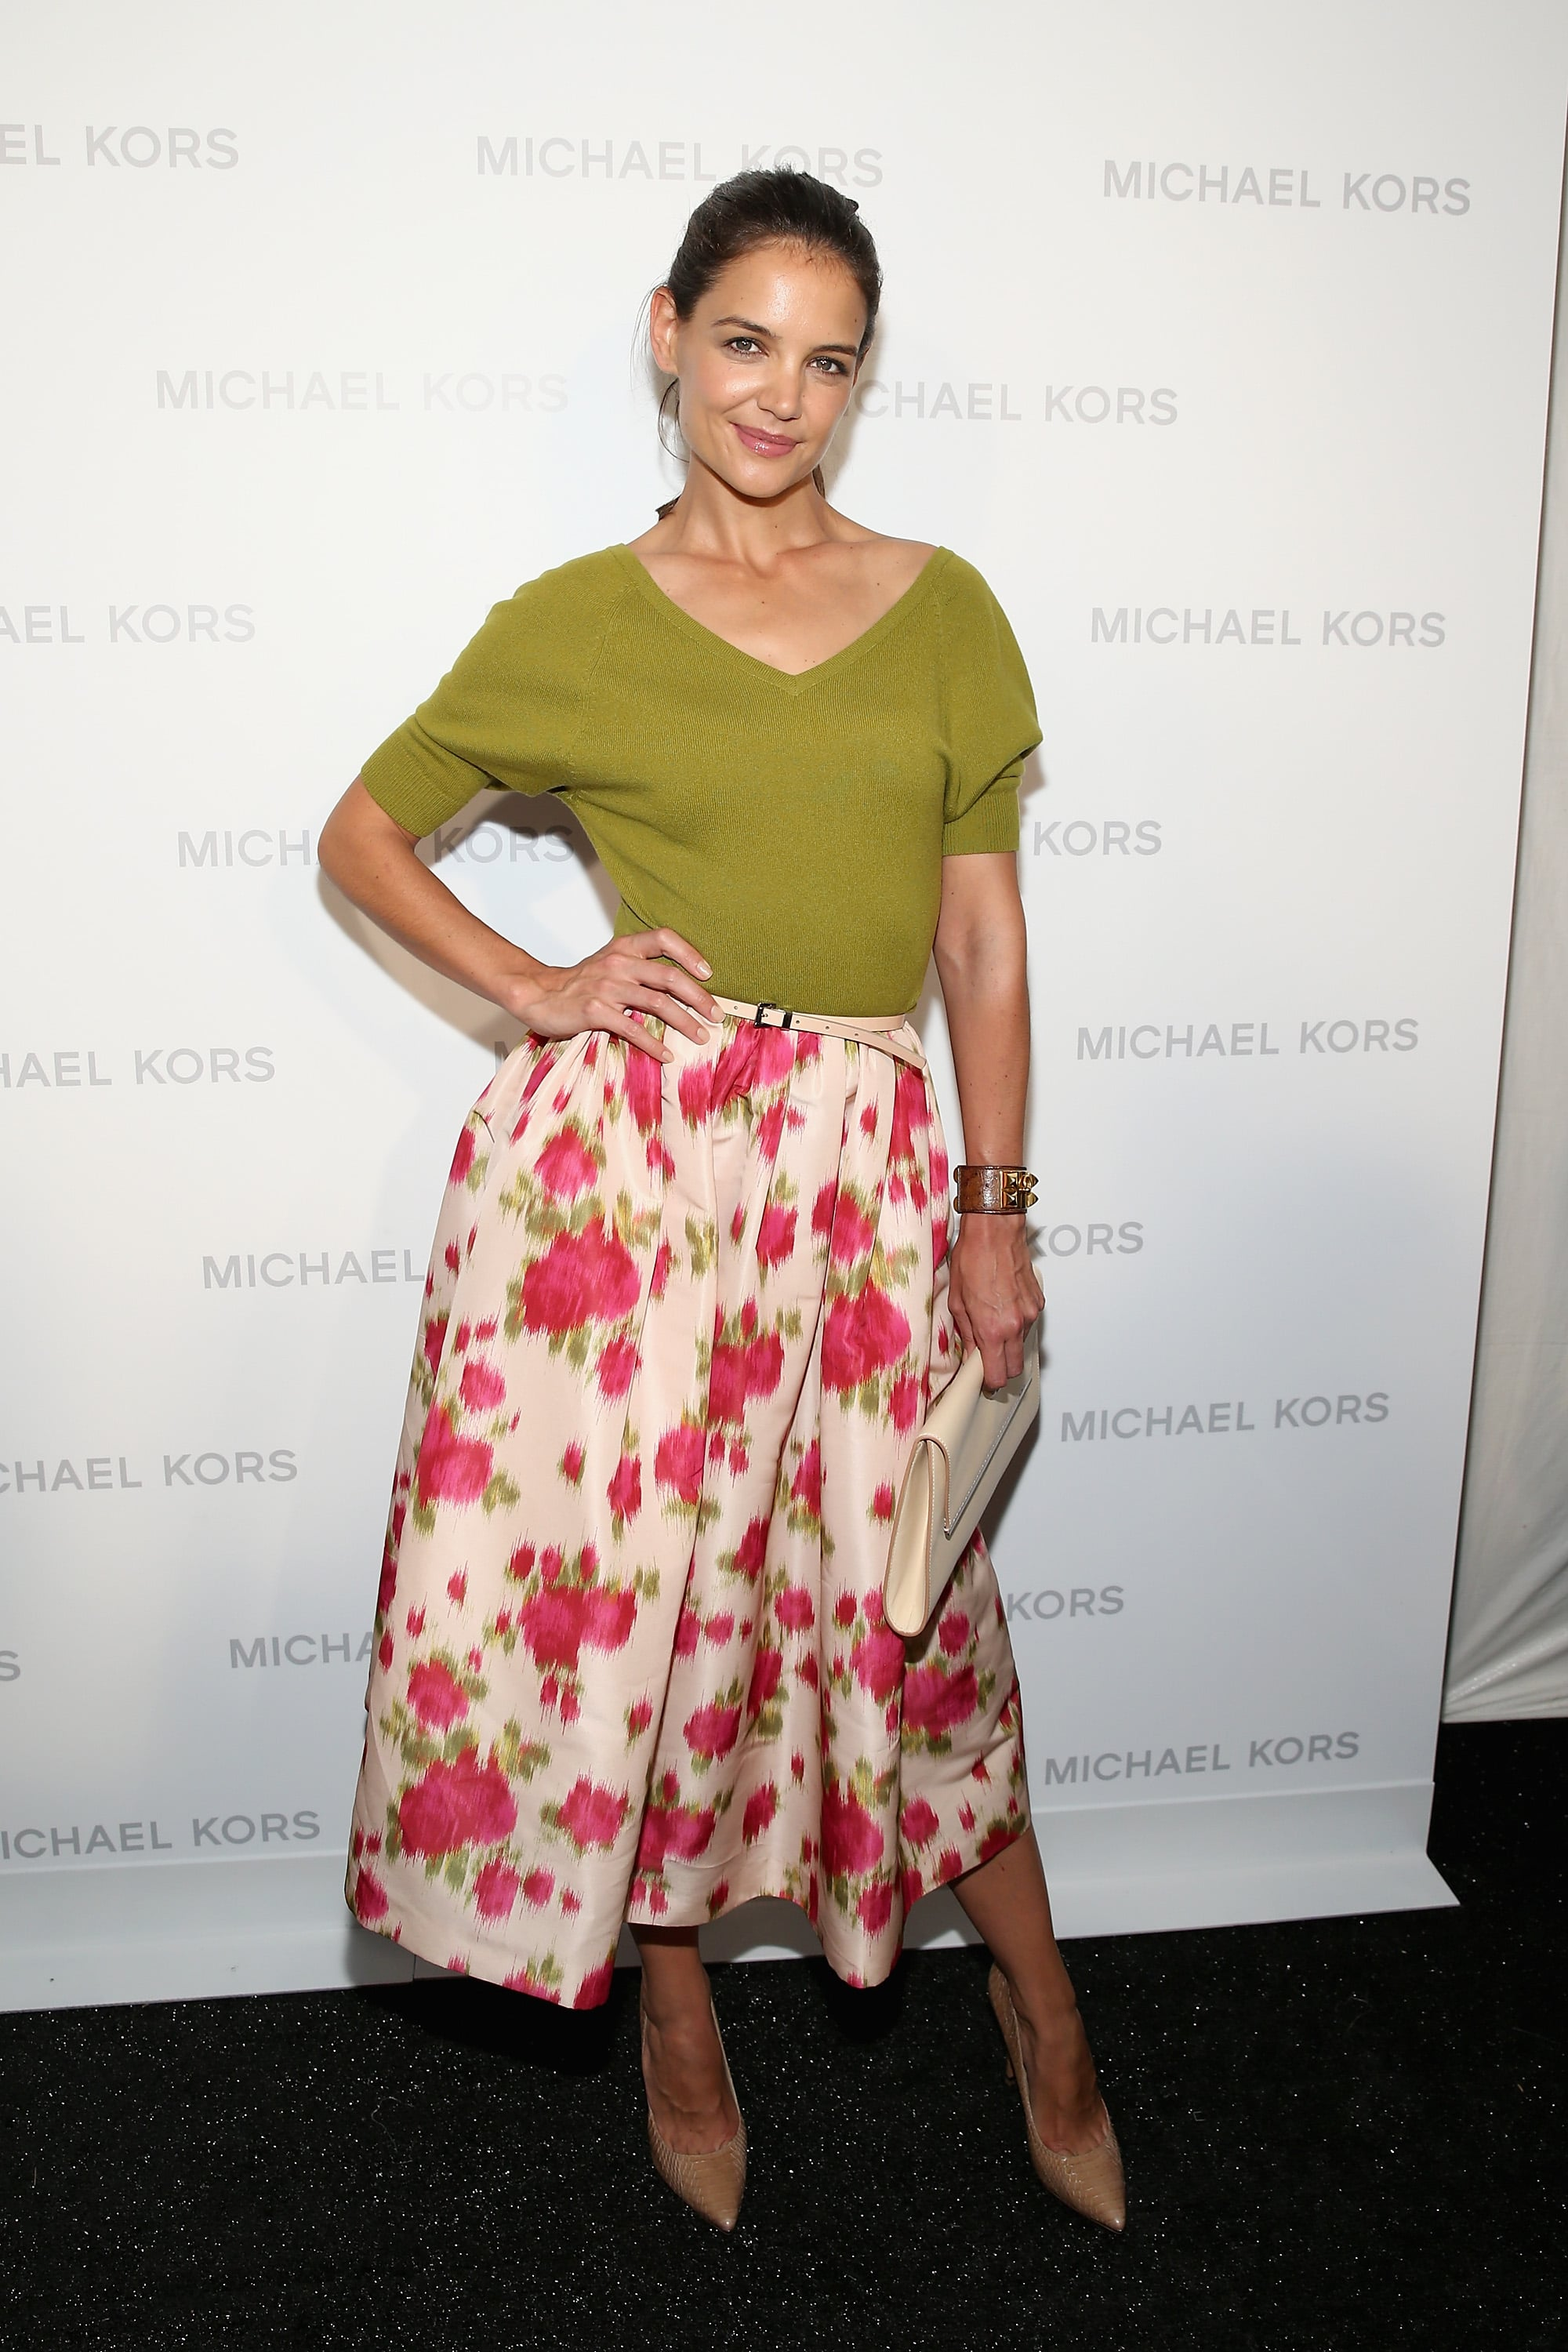 Katie Holmes wore a Michael Kors ensemble to the designer's Spring 2014 runway show on Wednesday morning.